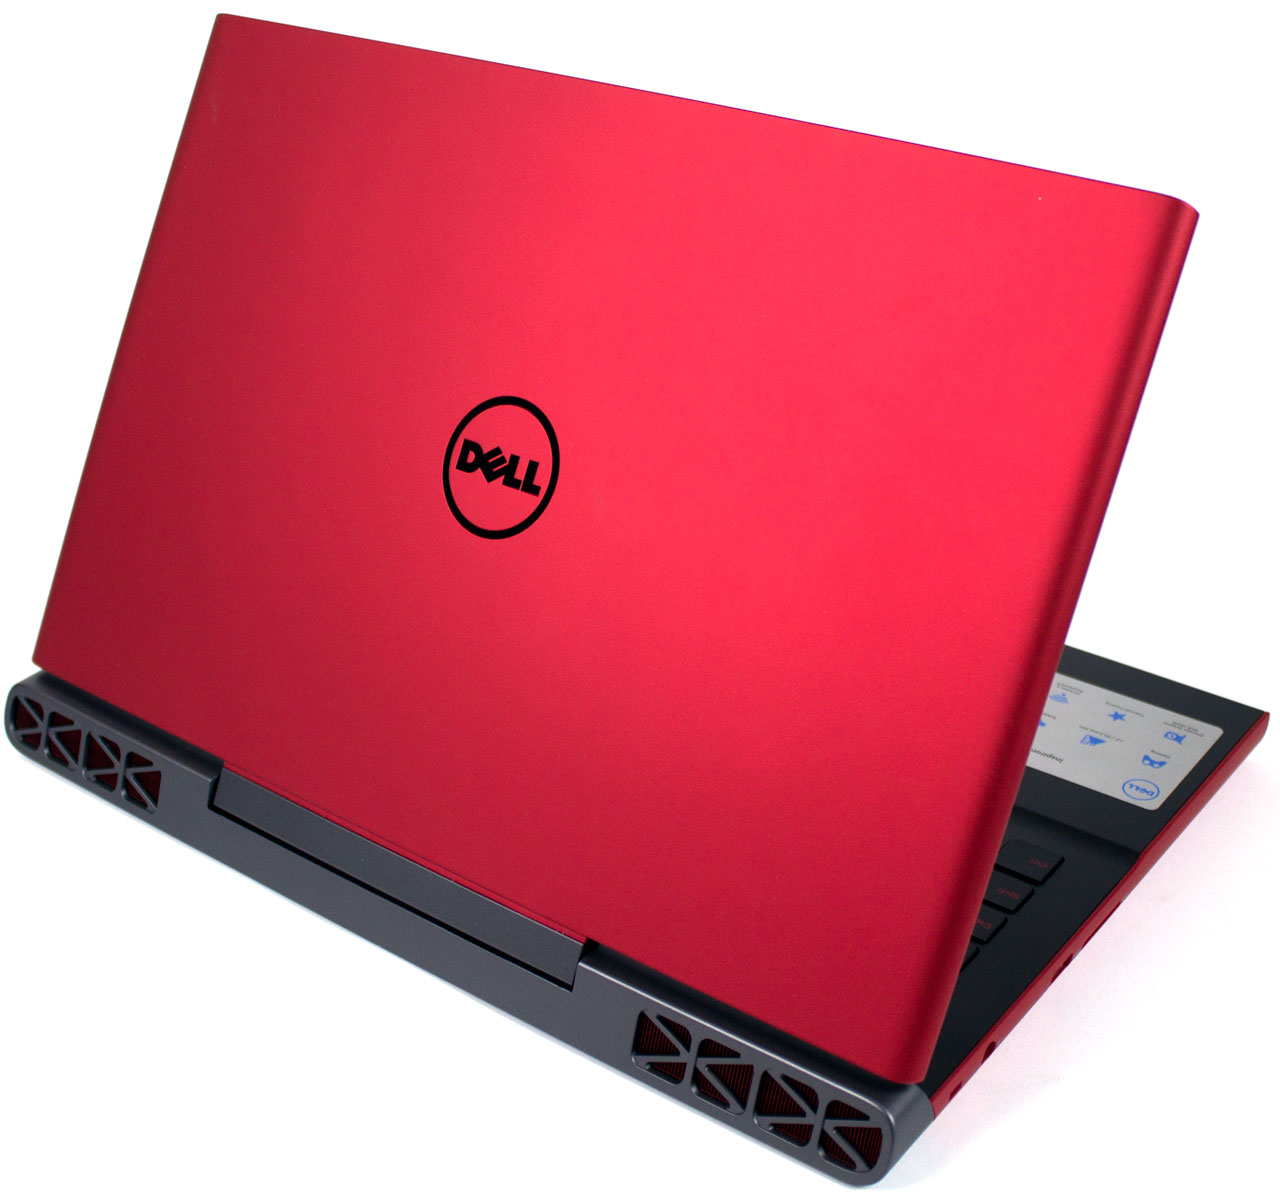 big_dell-inspiron-15-7000_01.jpg